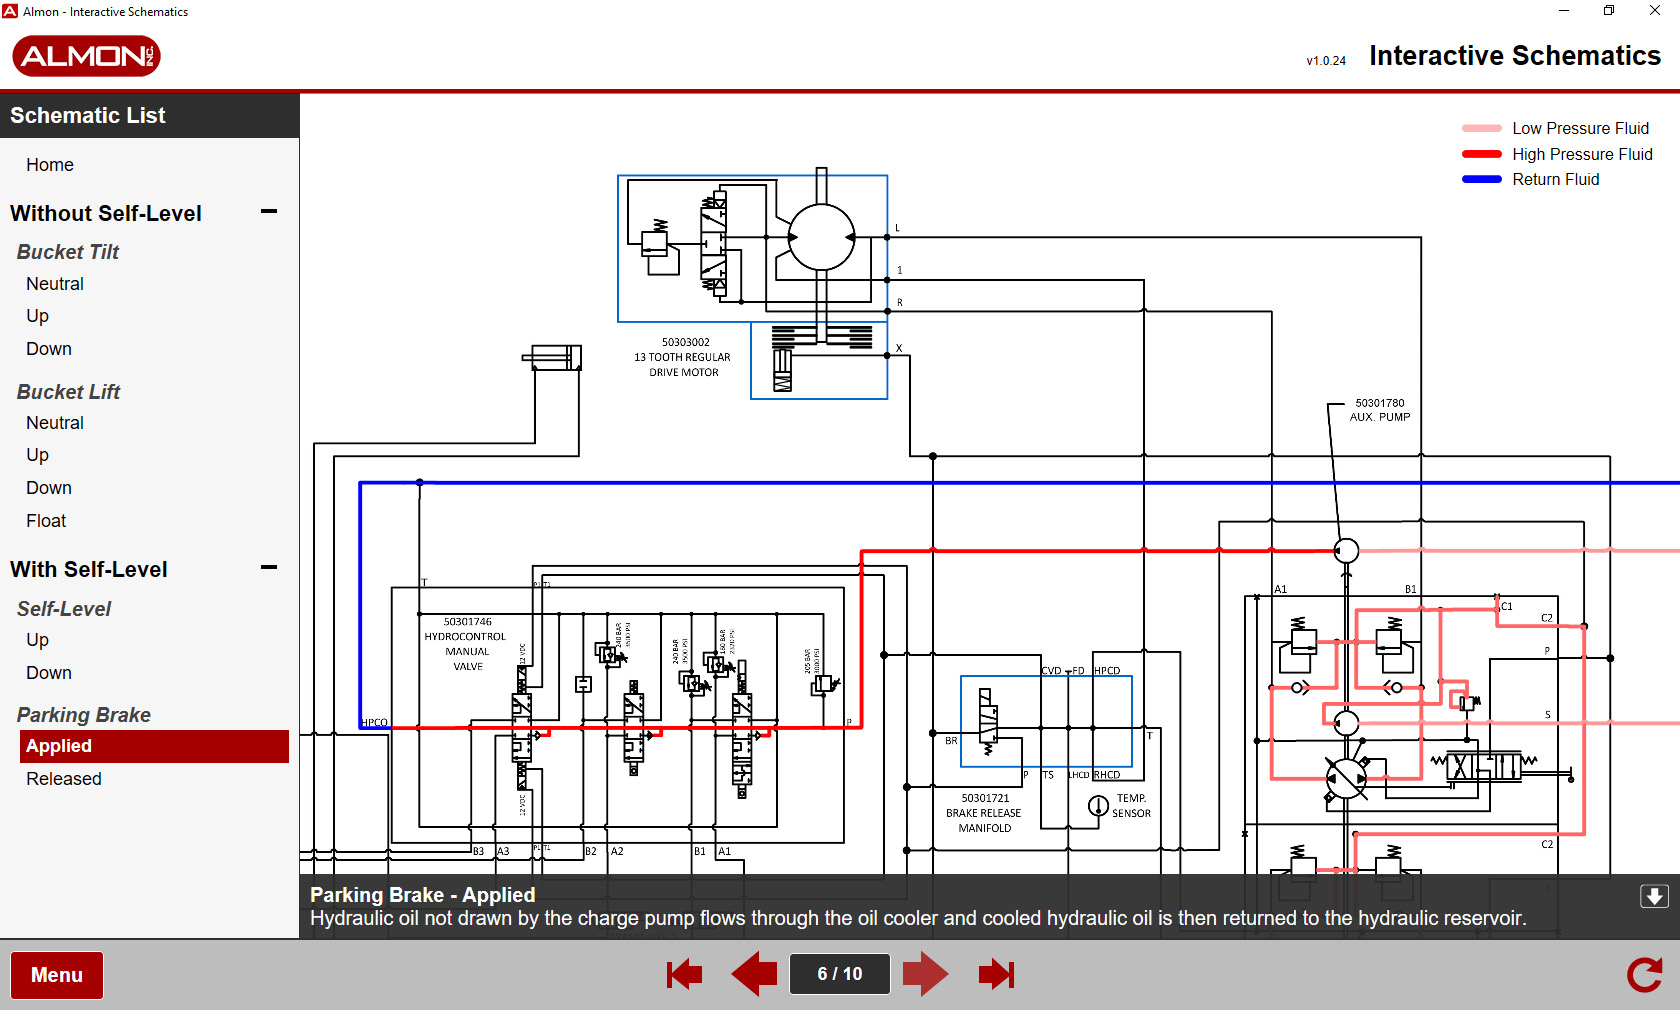 Almon interactive a better way to do schematics almon works with our clients to help them organize their schematics and system flows into a more intuitive structure which becomes the basis of the ccuart Image collections